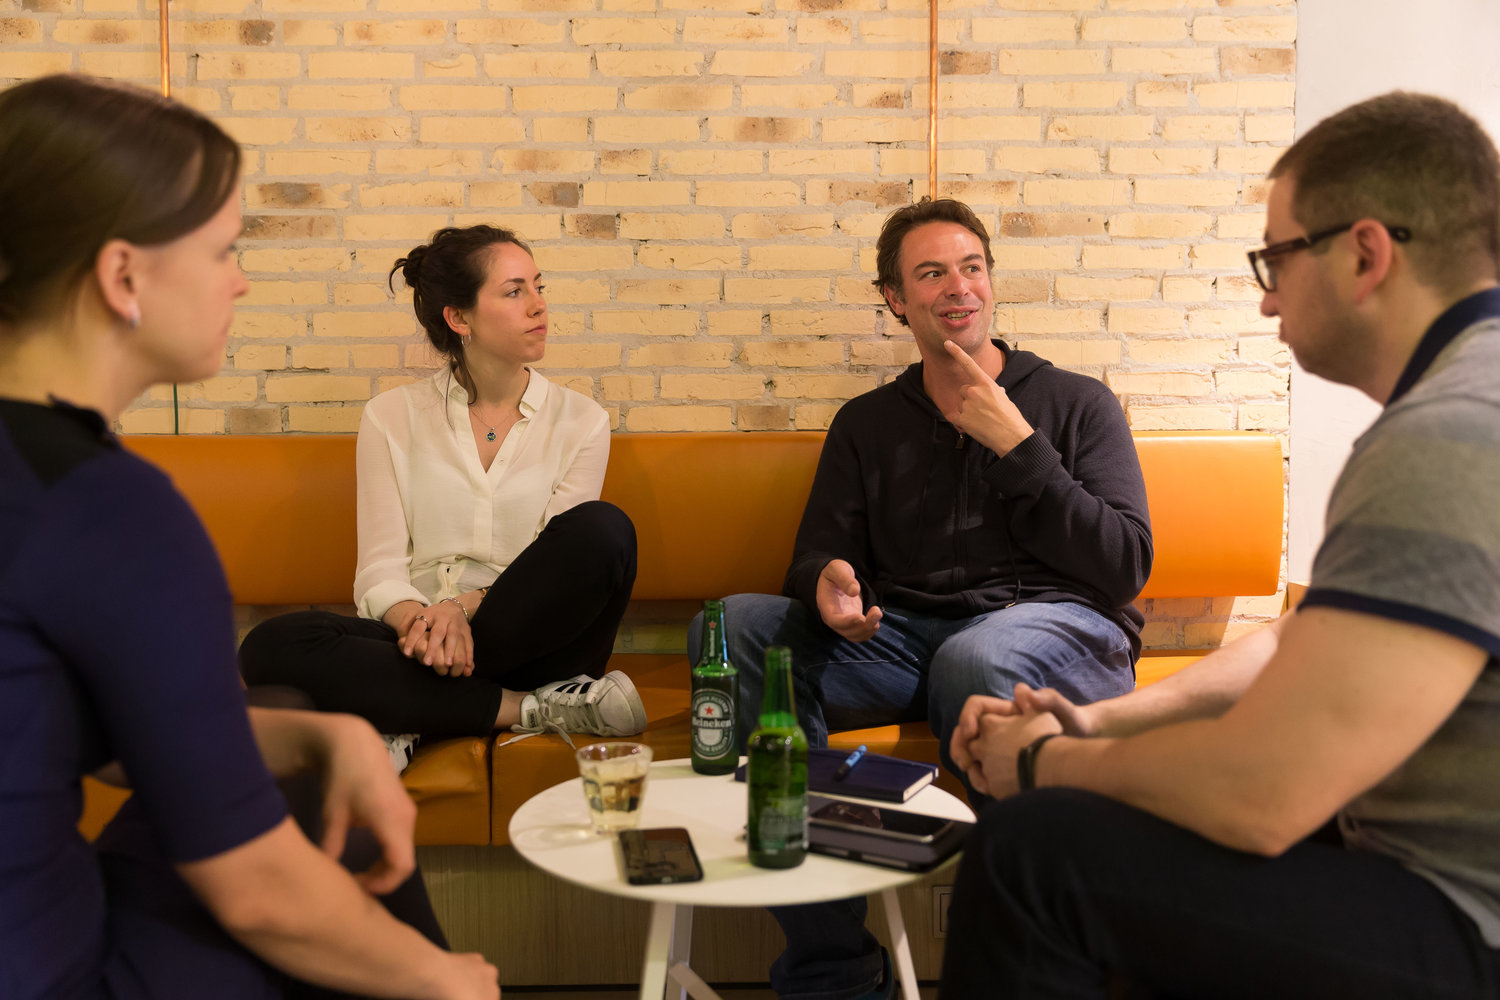 Alexei and Catriona (Desolenator) getting to know their mentors Vladimir and Jitka